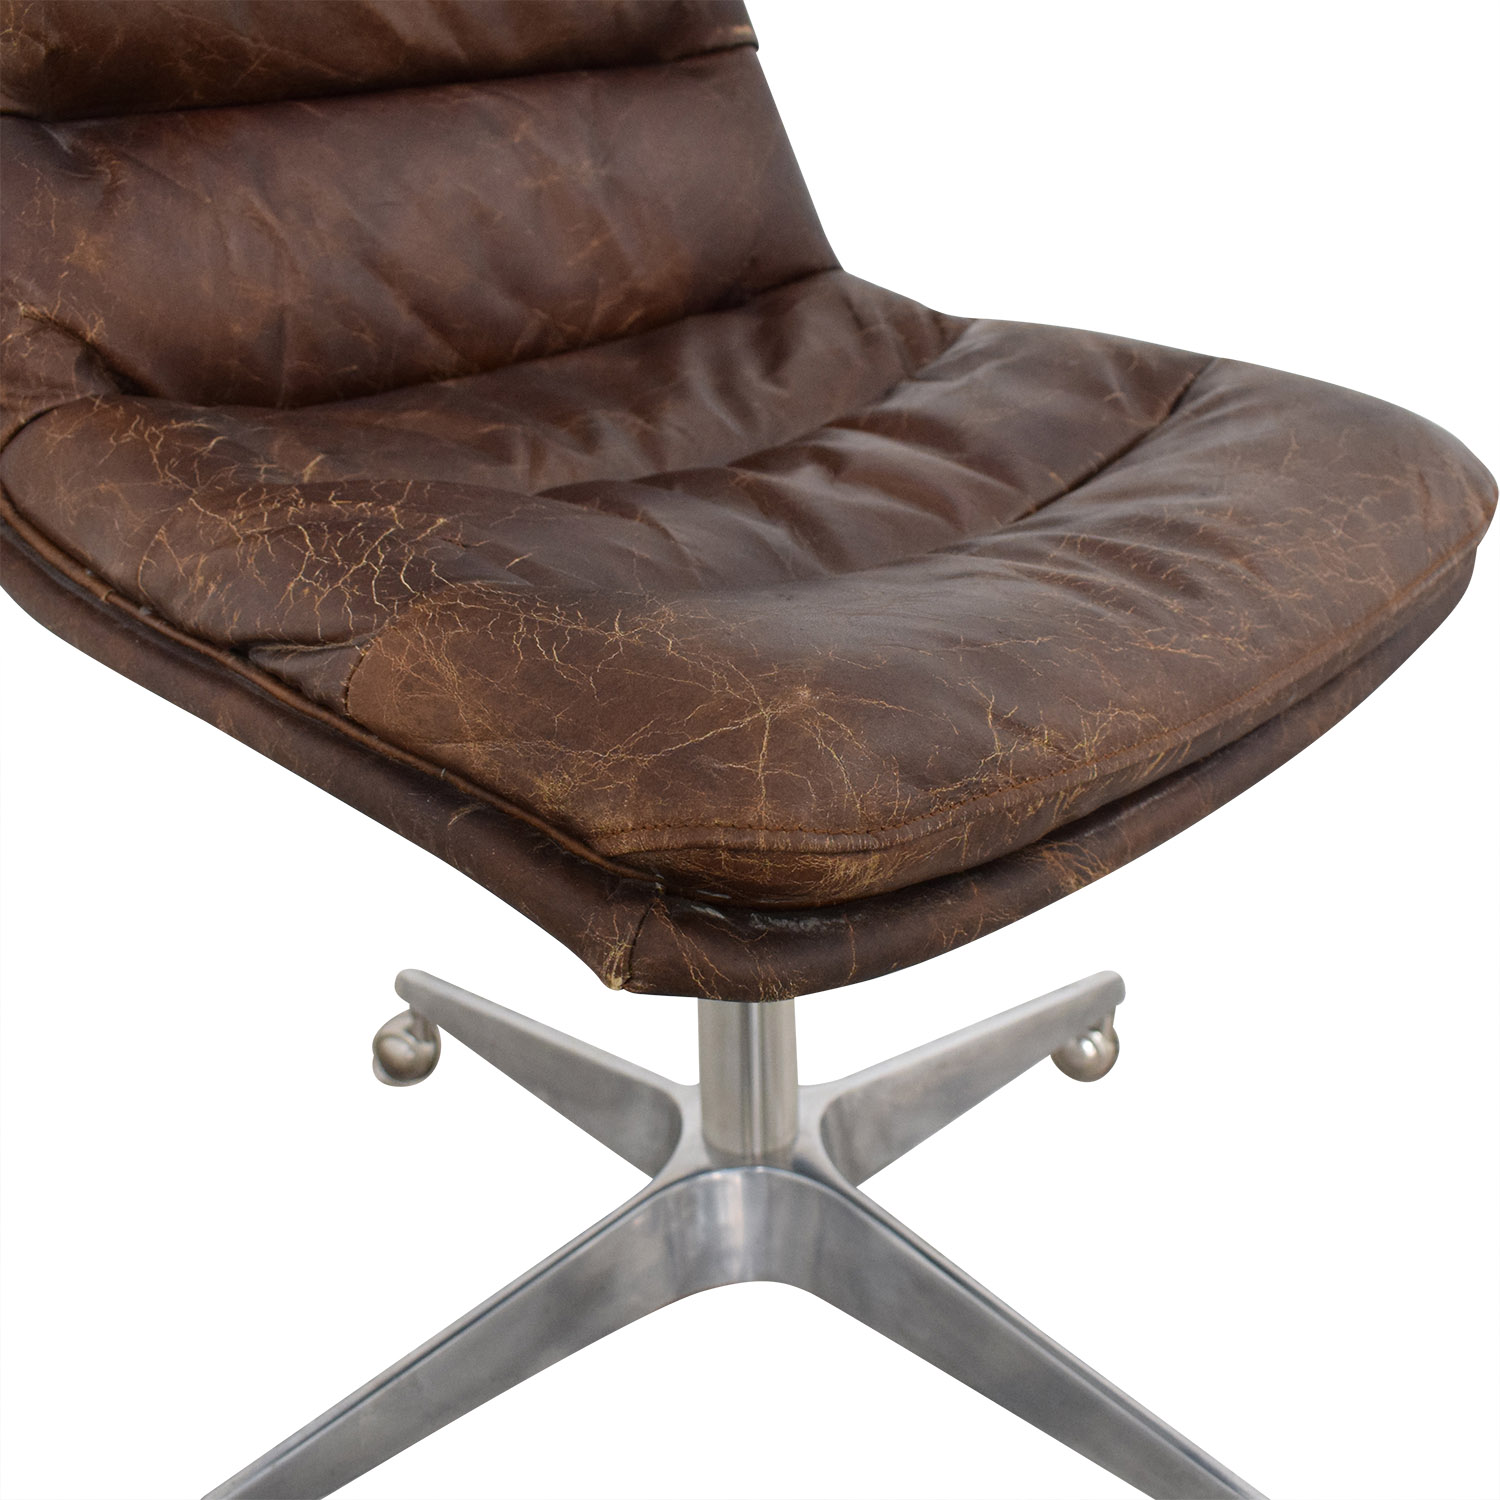 Restoration Hardware Restoration Hardware Griffith Desk Chair used